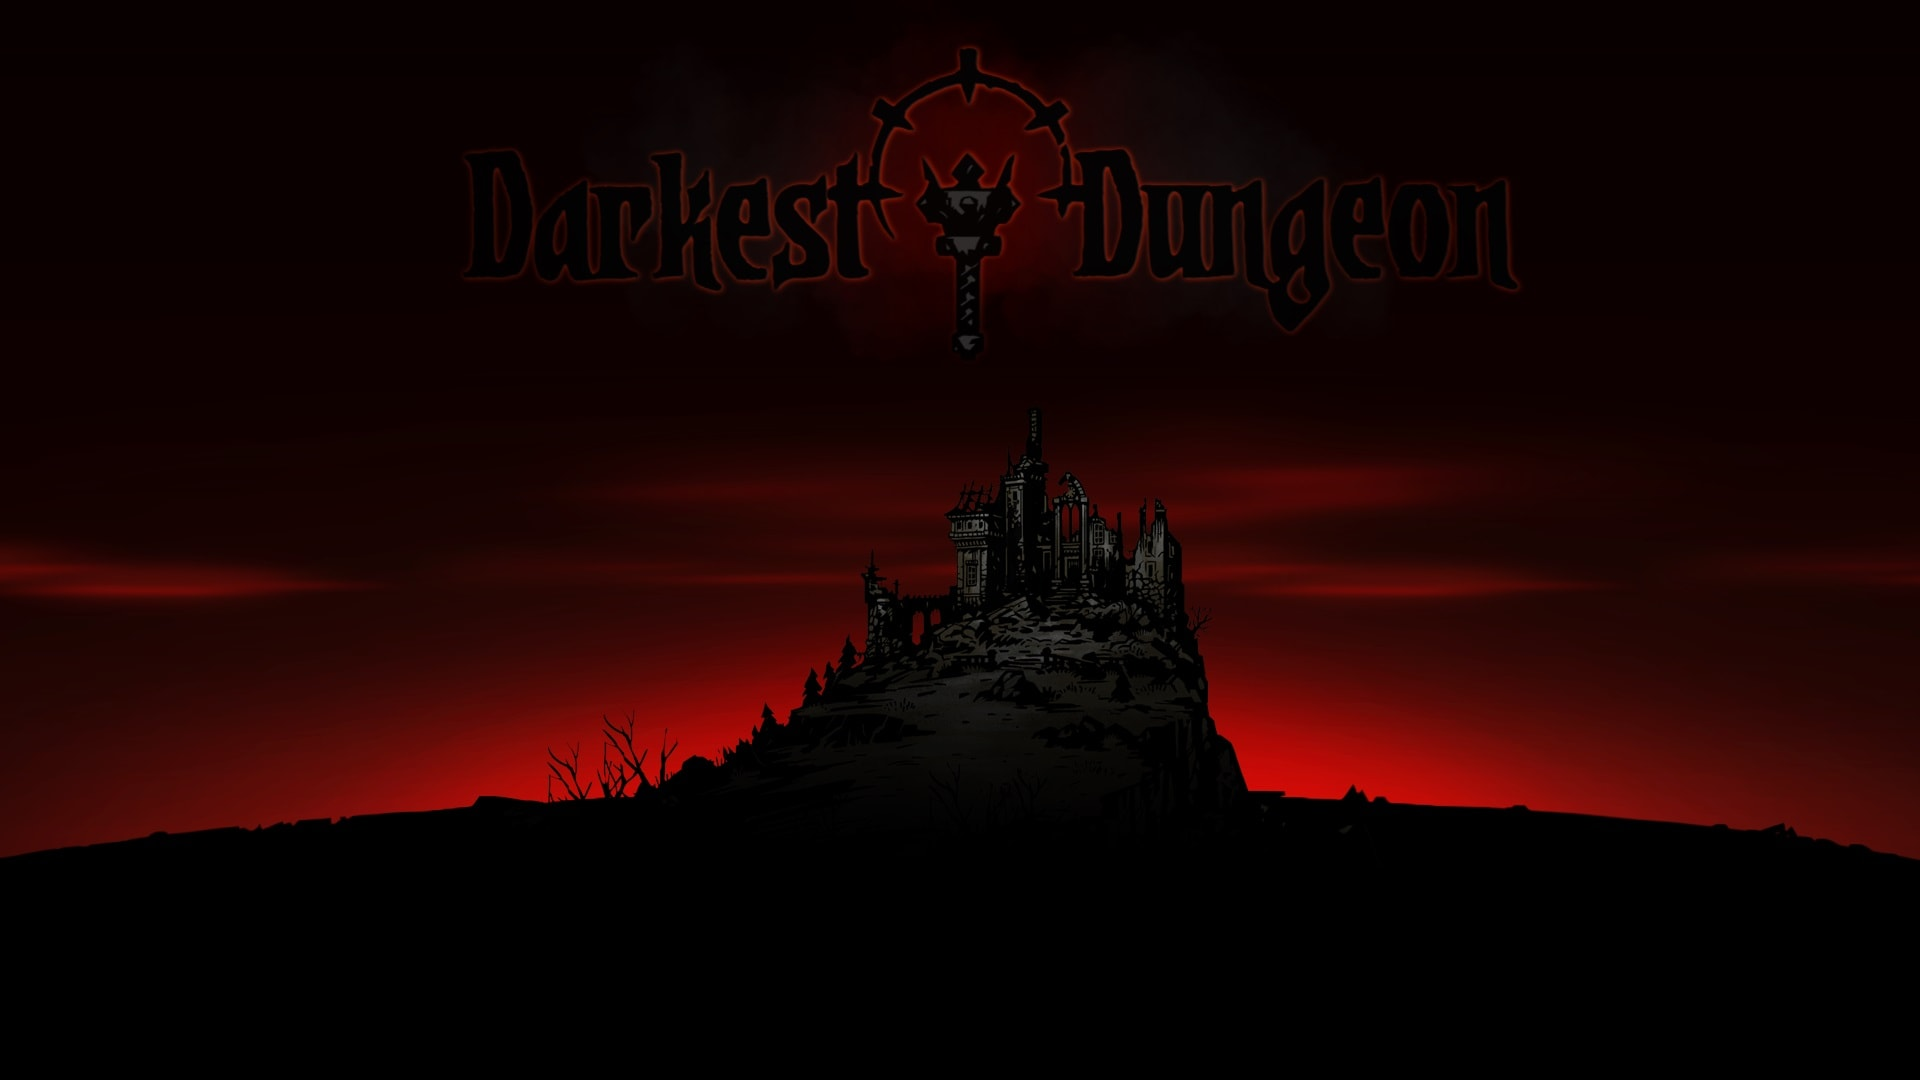 Darkest Dungeon HD pics